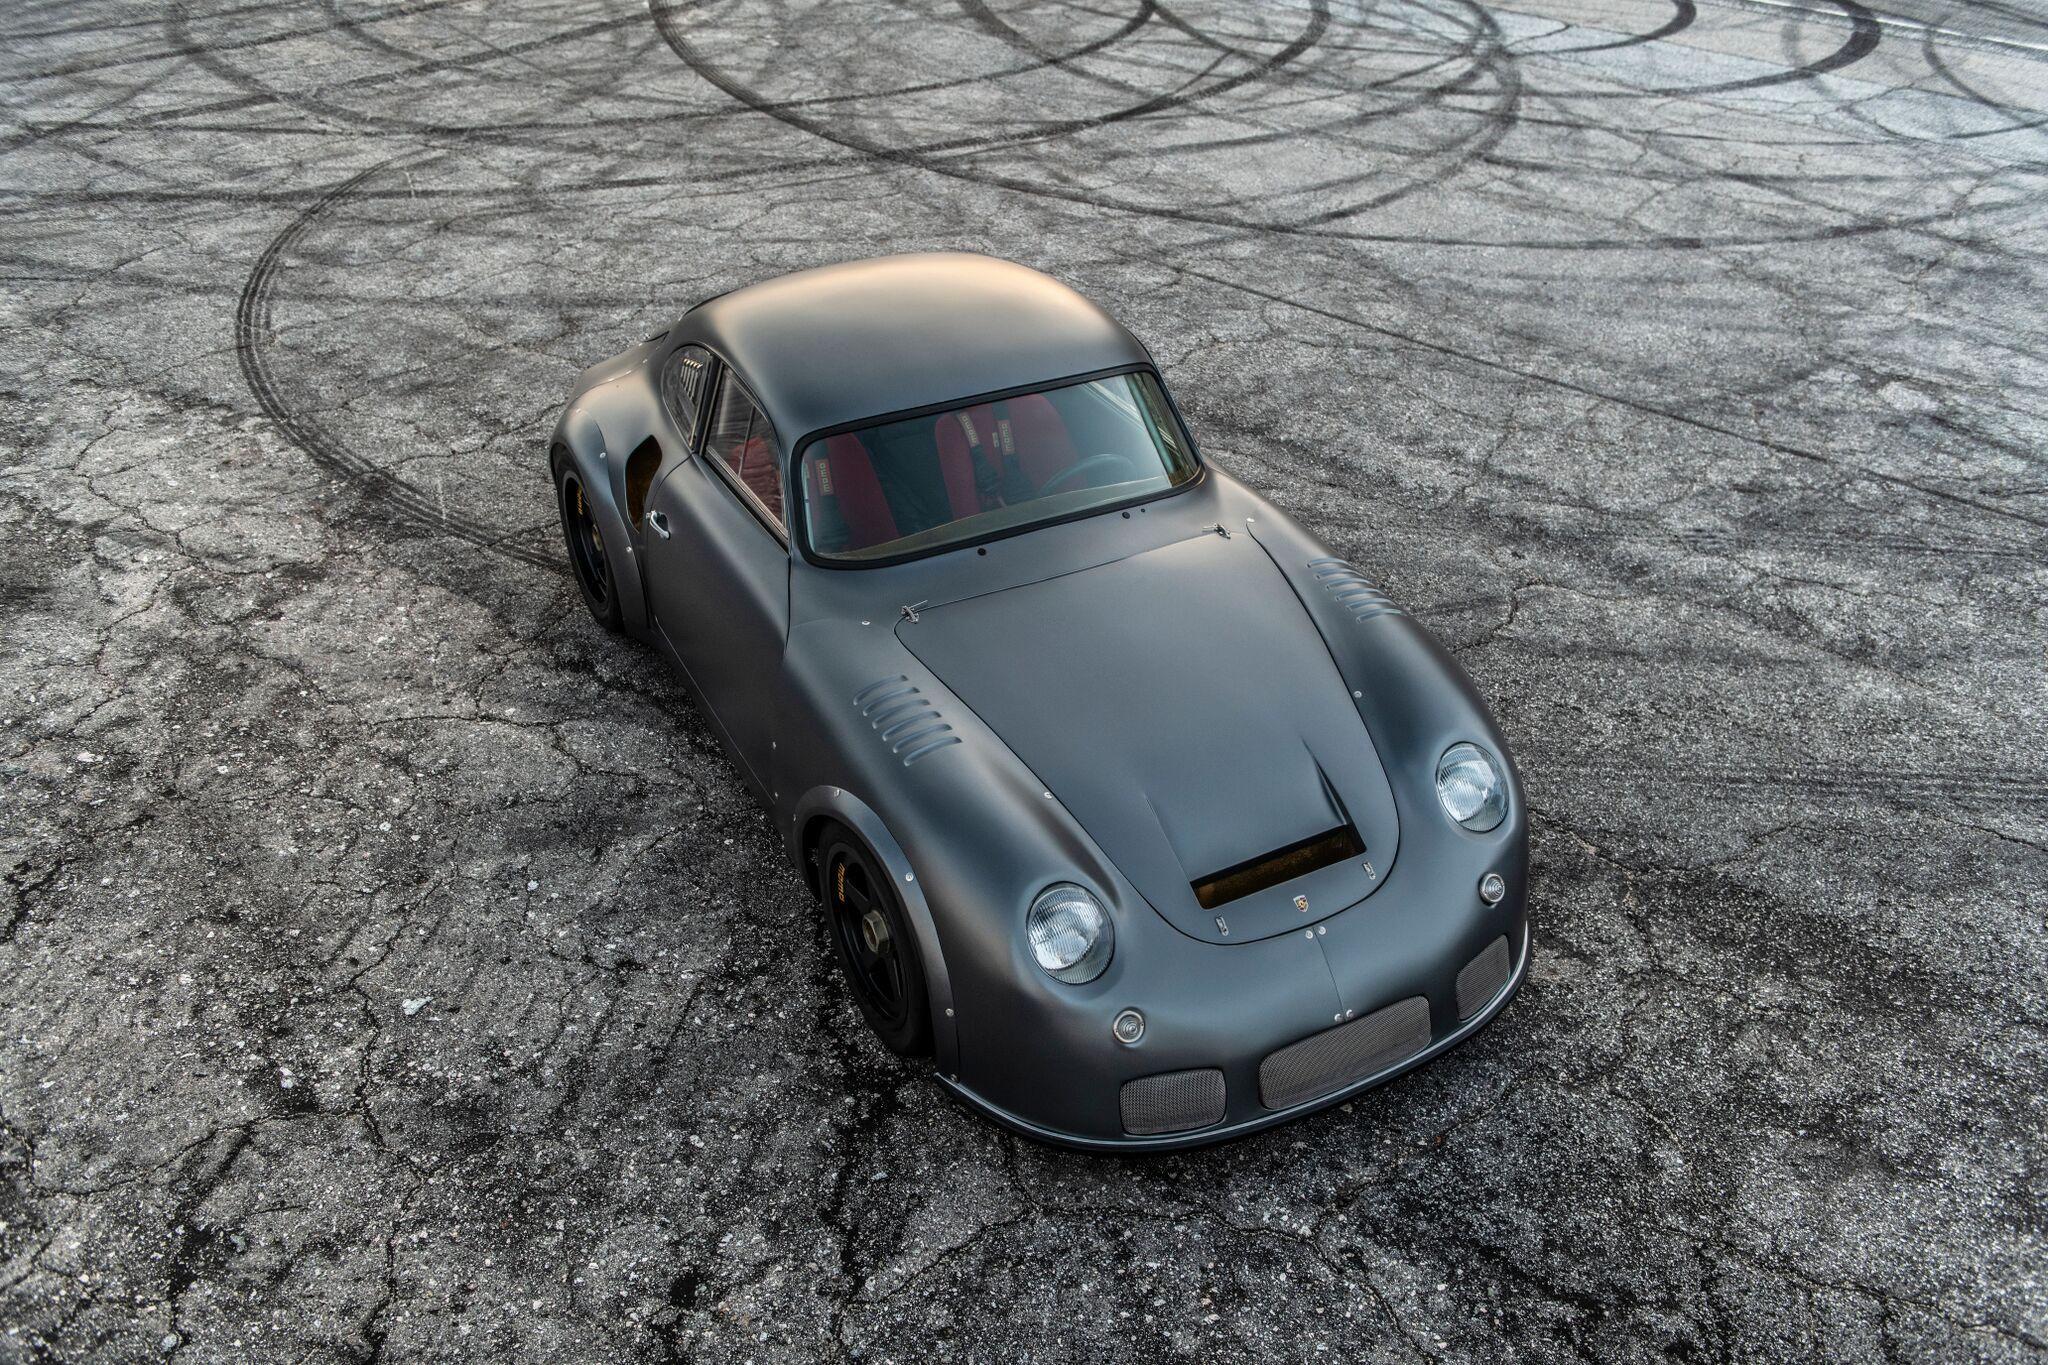 Porsche-356-RSR-Outlaw-by-Momo-and-Emory-motorsports-3